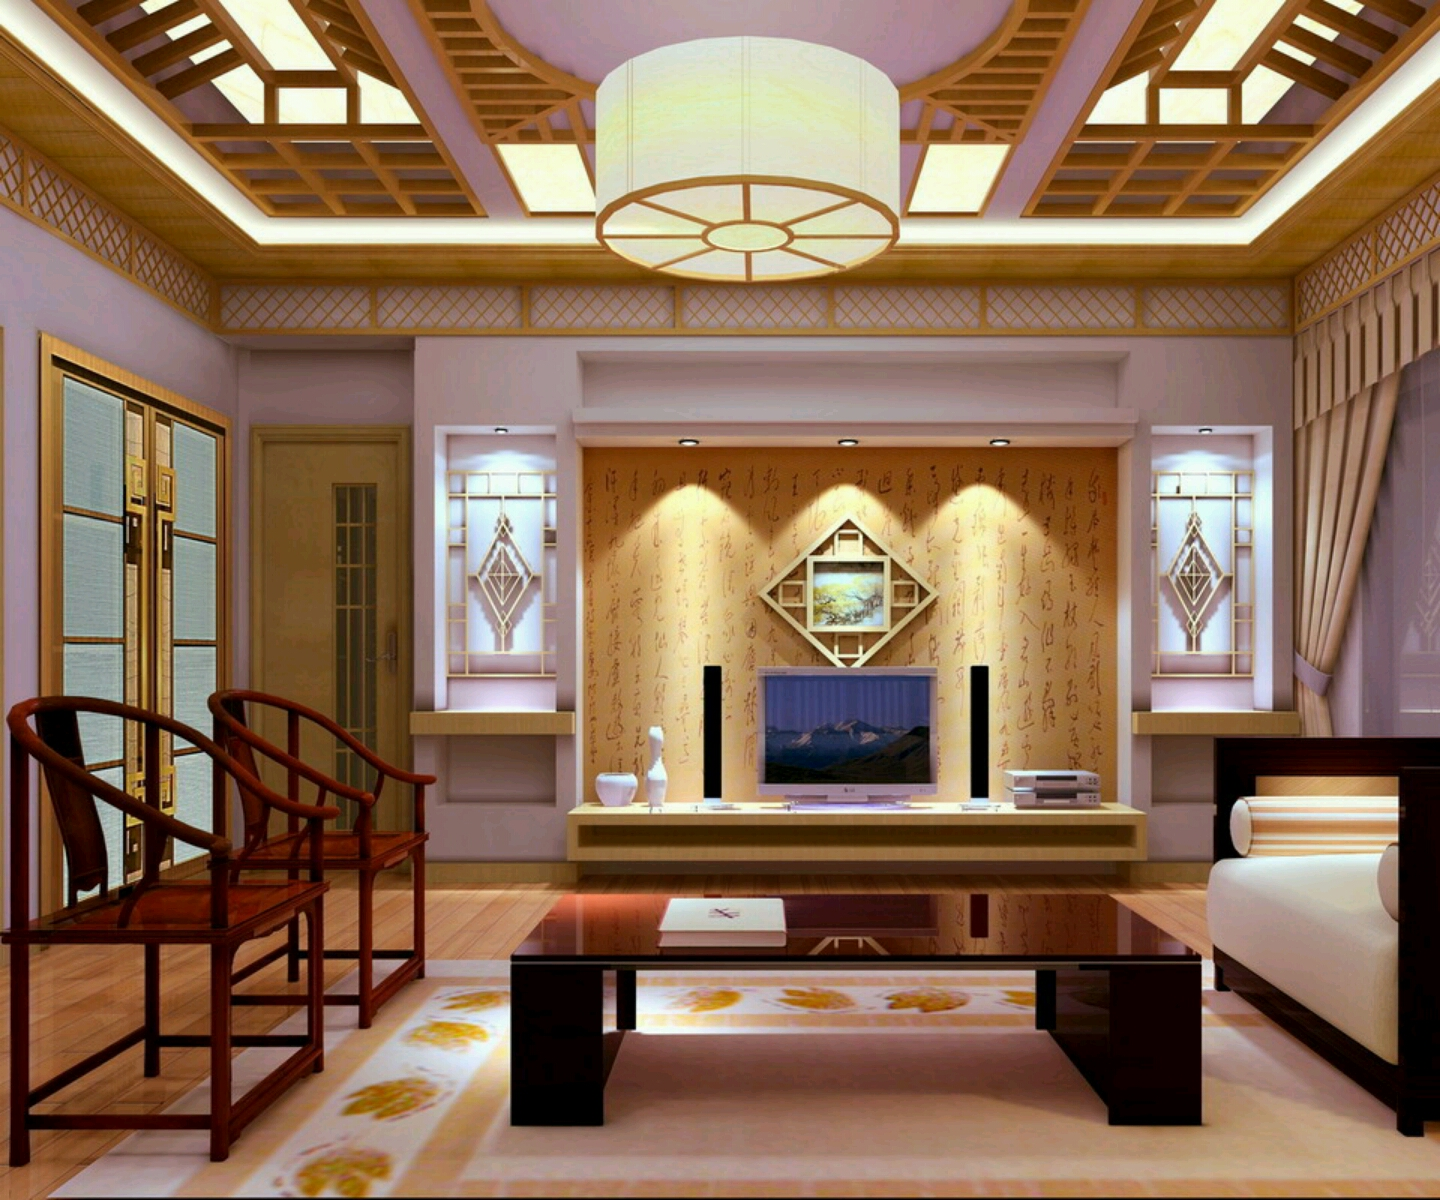 New home designs latest.: Homes interior designs studyrooms.